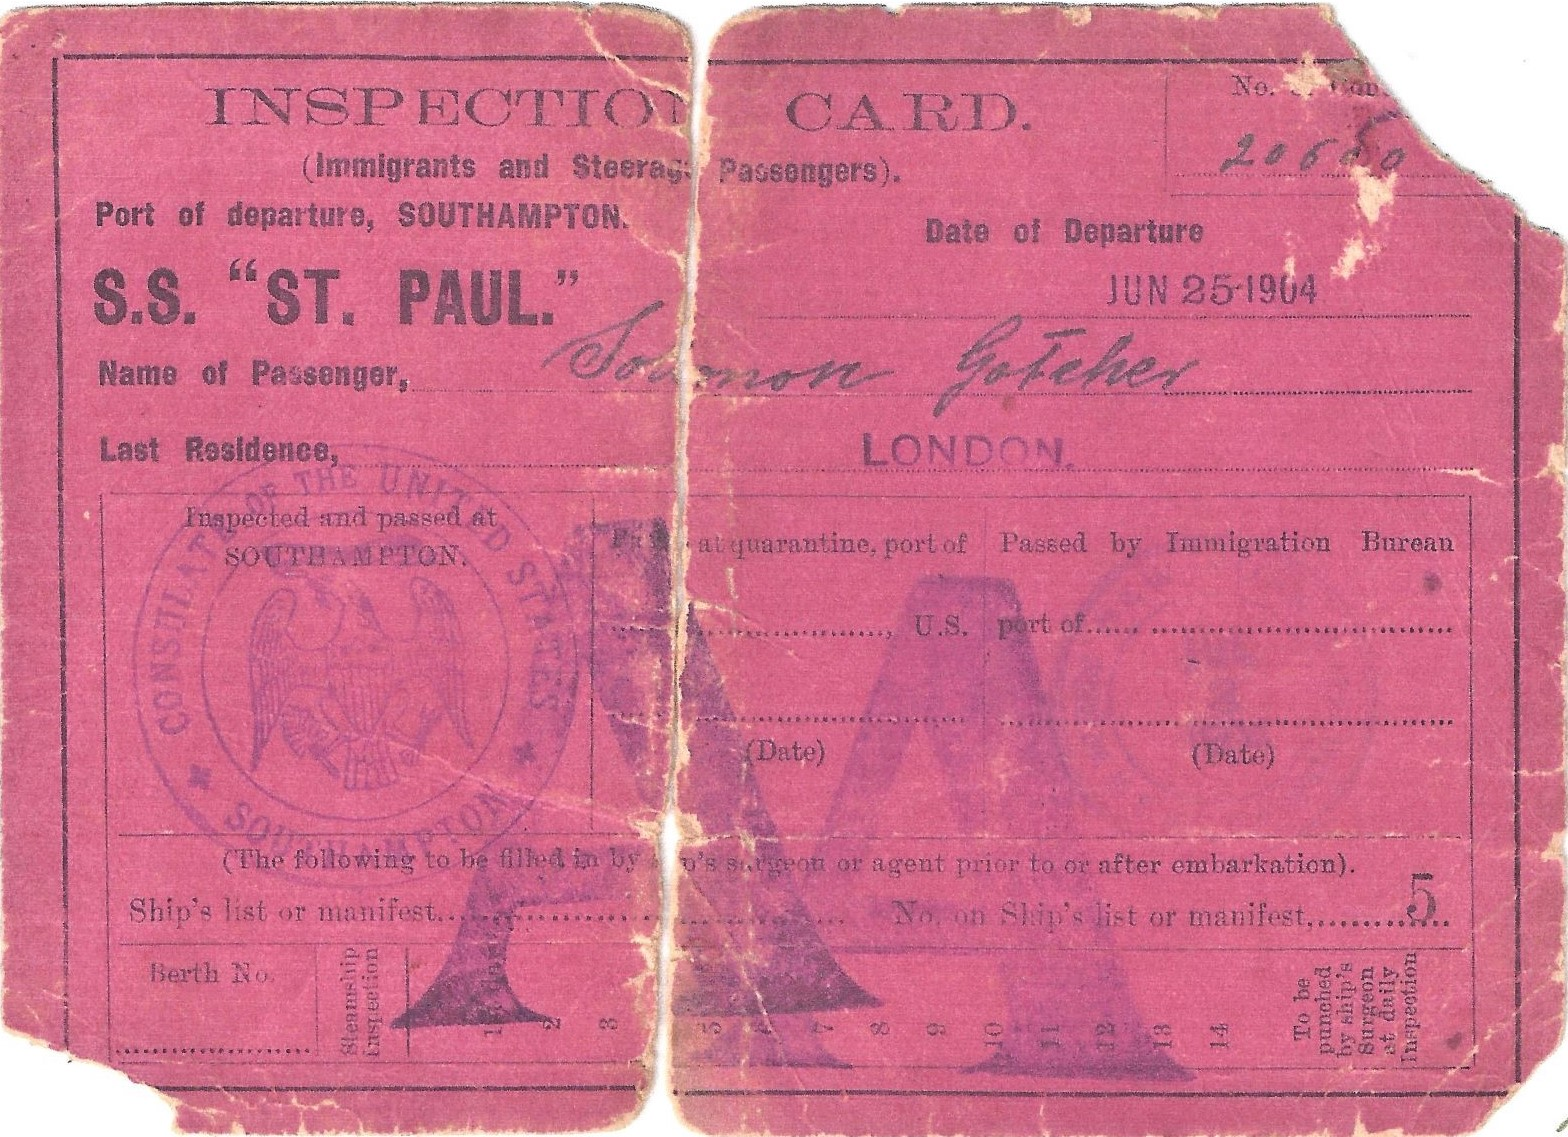 1904 Gotcher inspection card